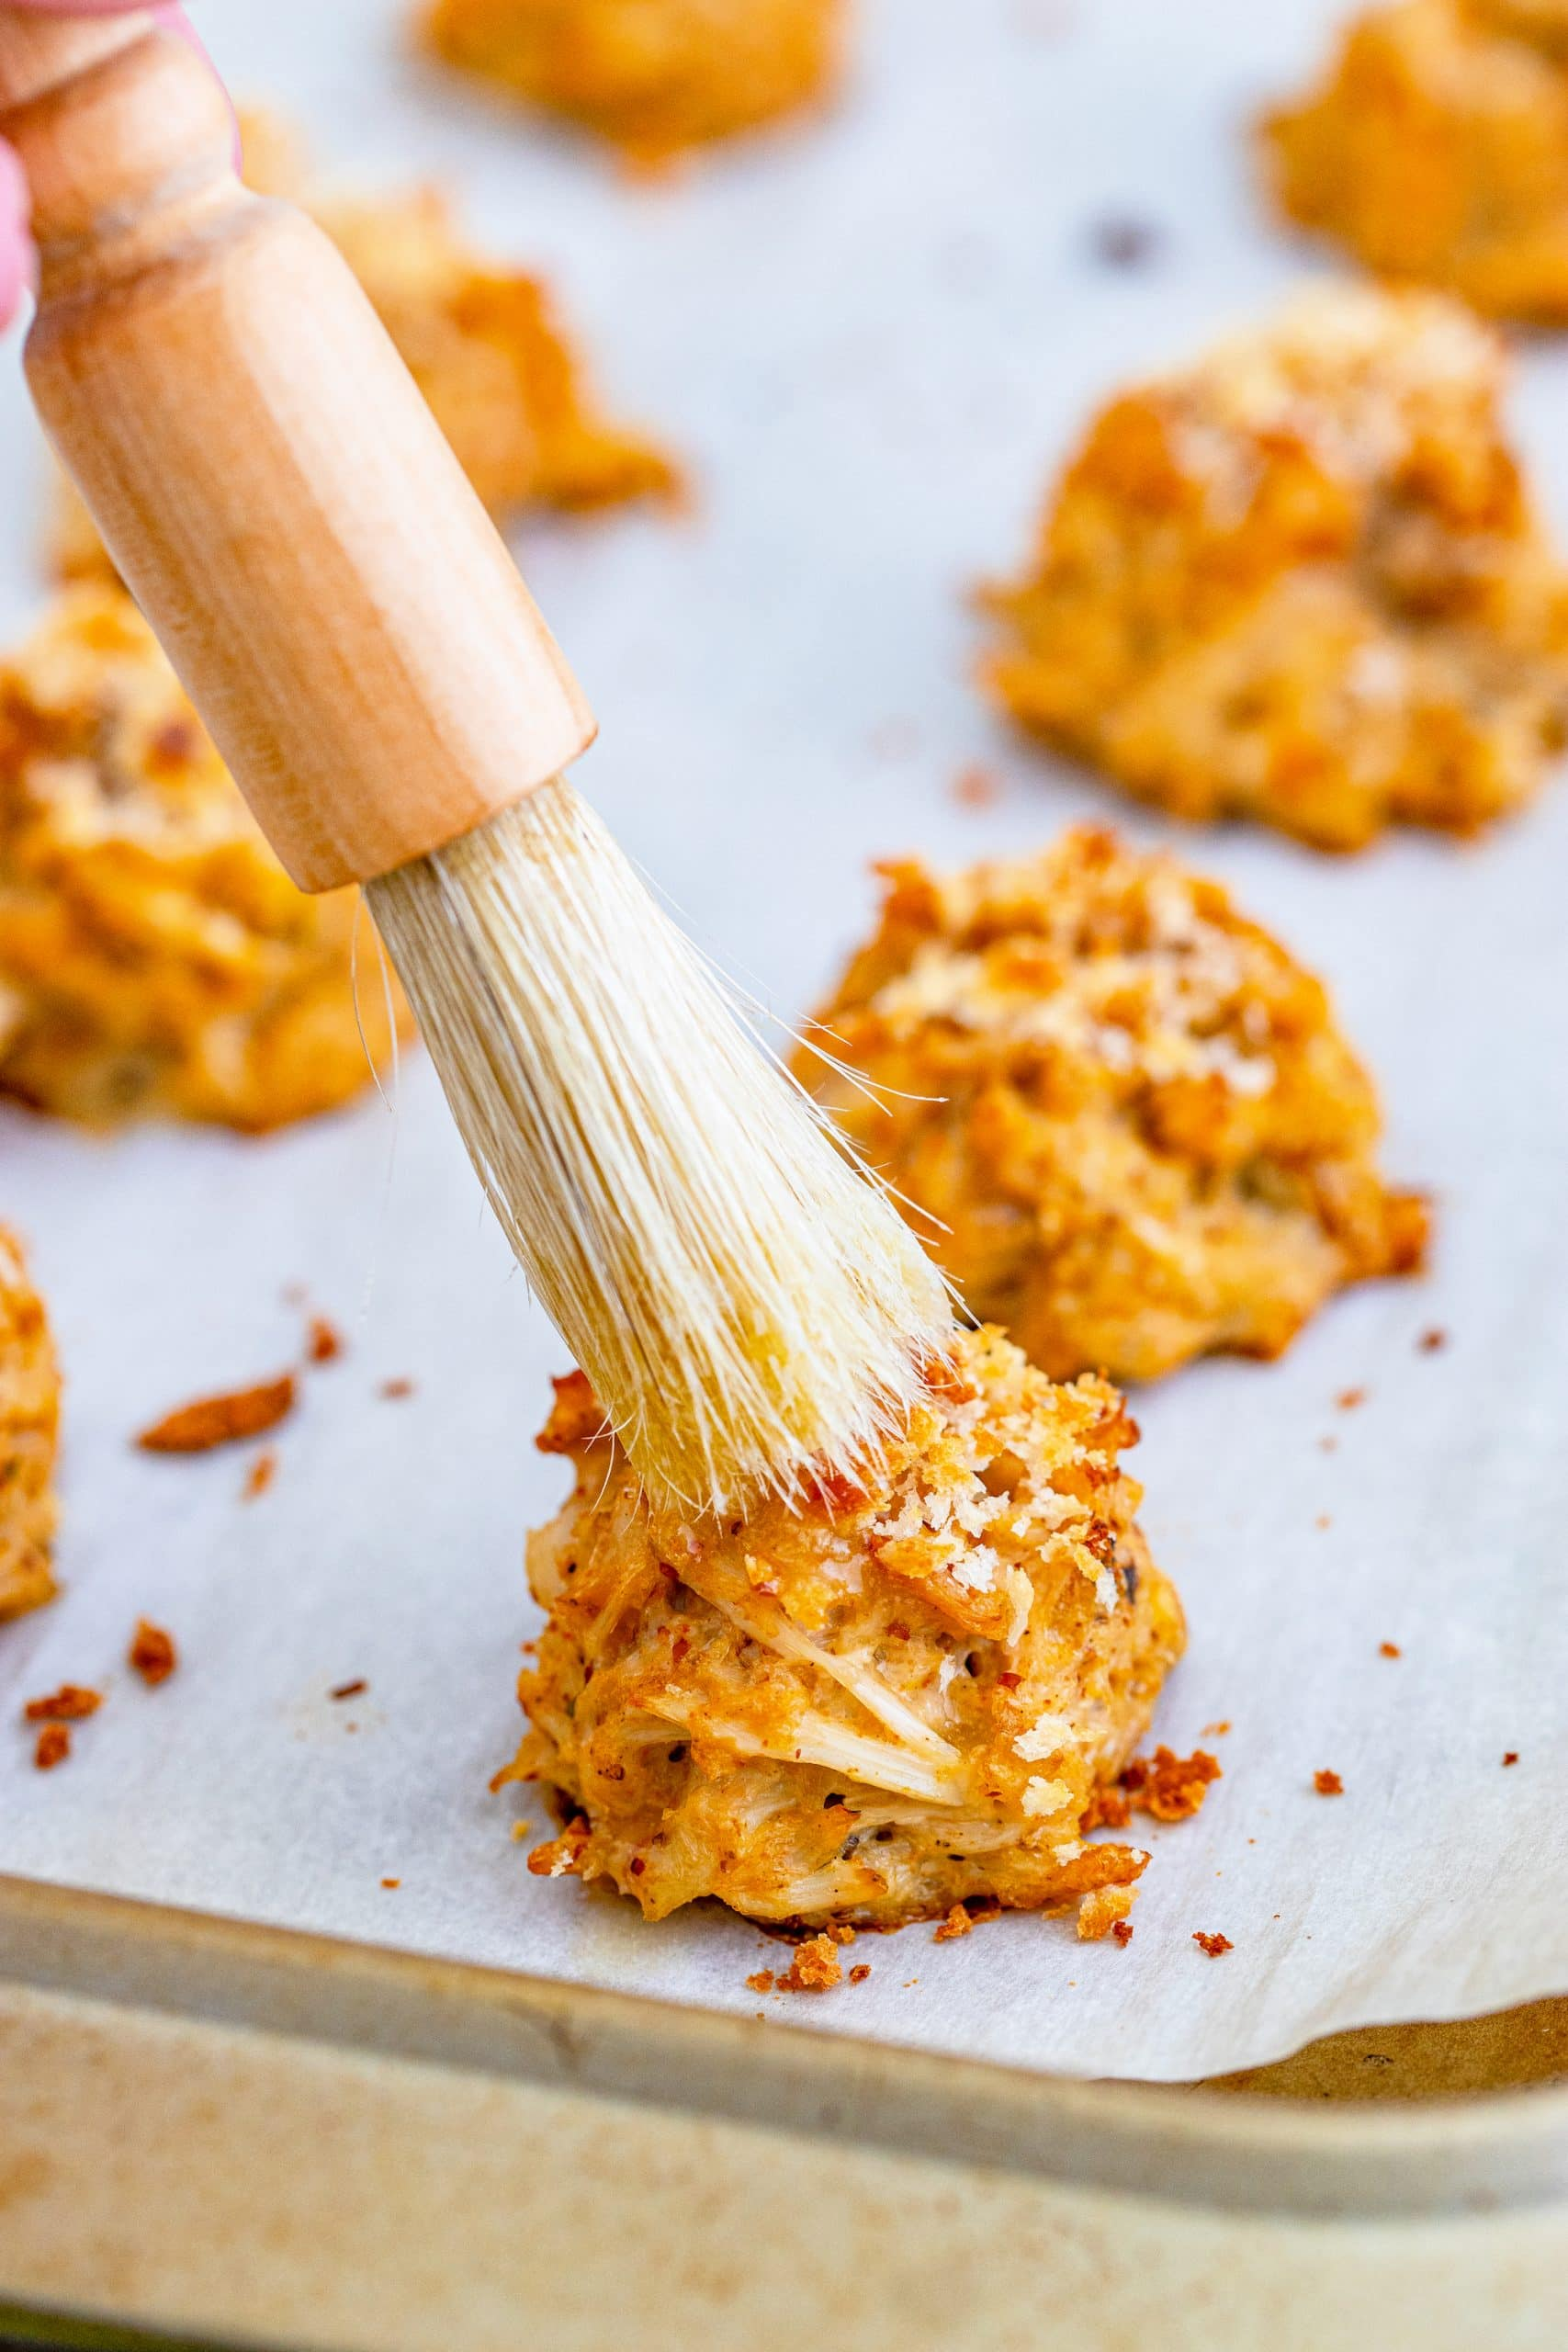 picture of a brush brushing butter onto a crab cake